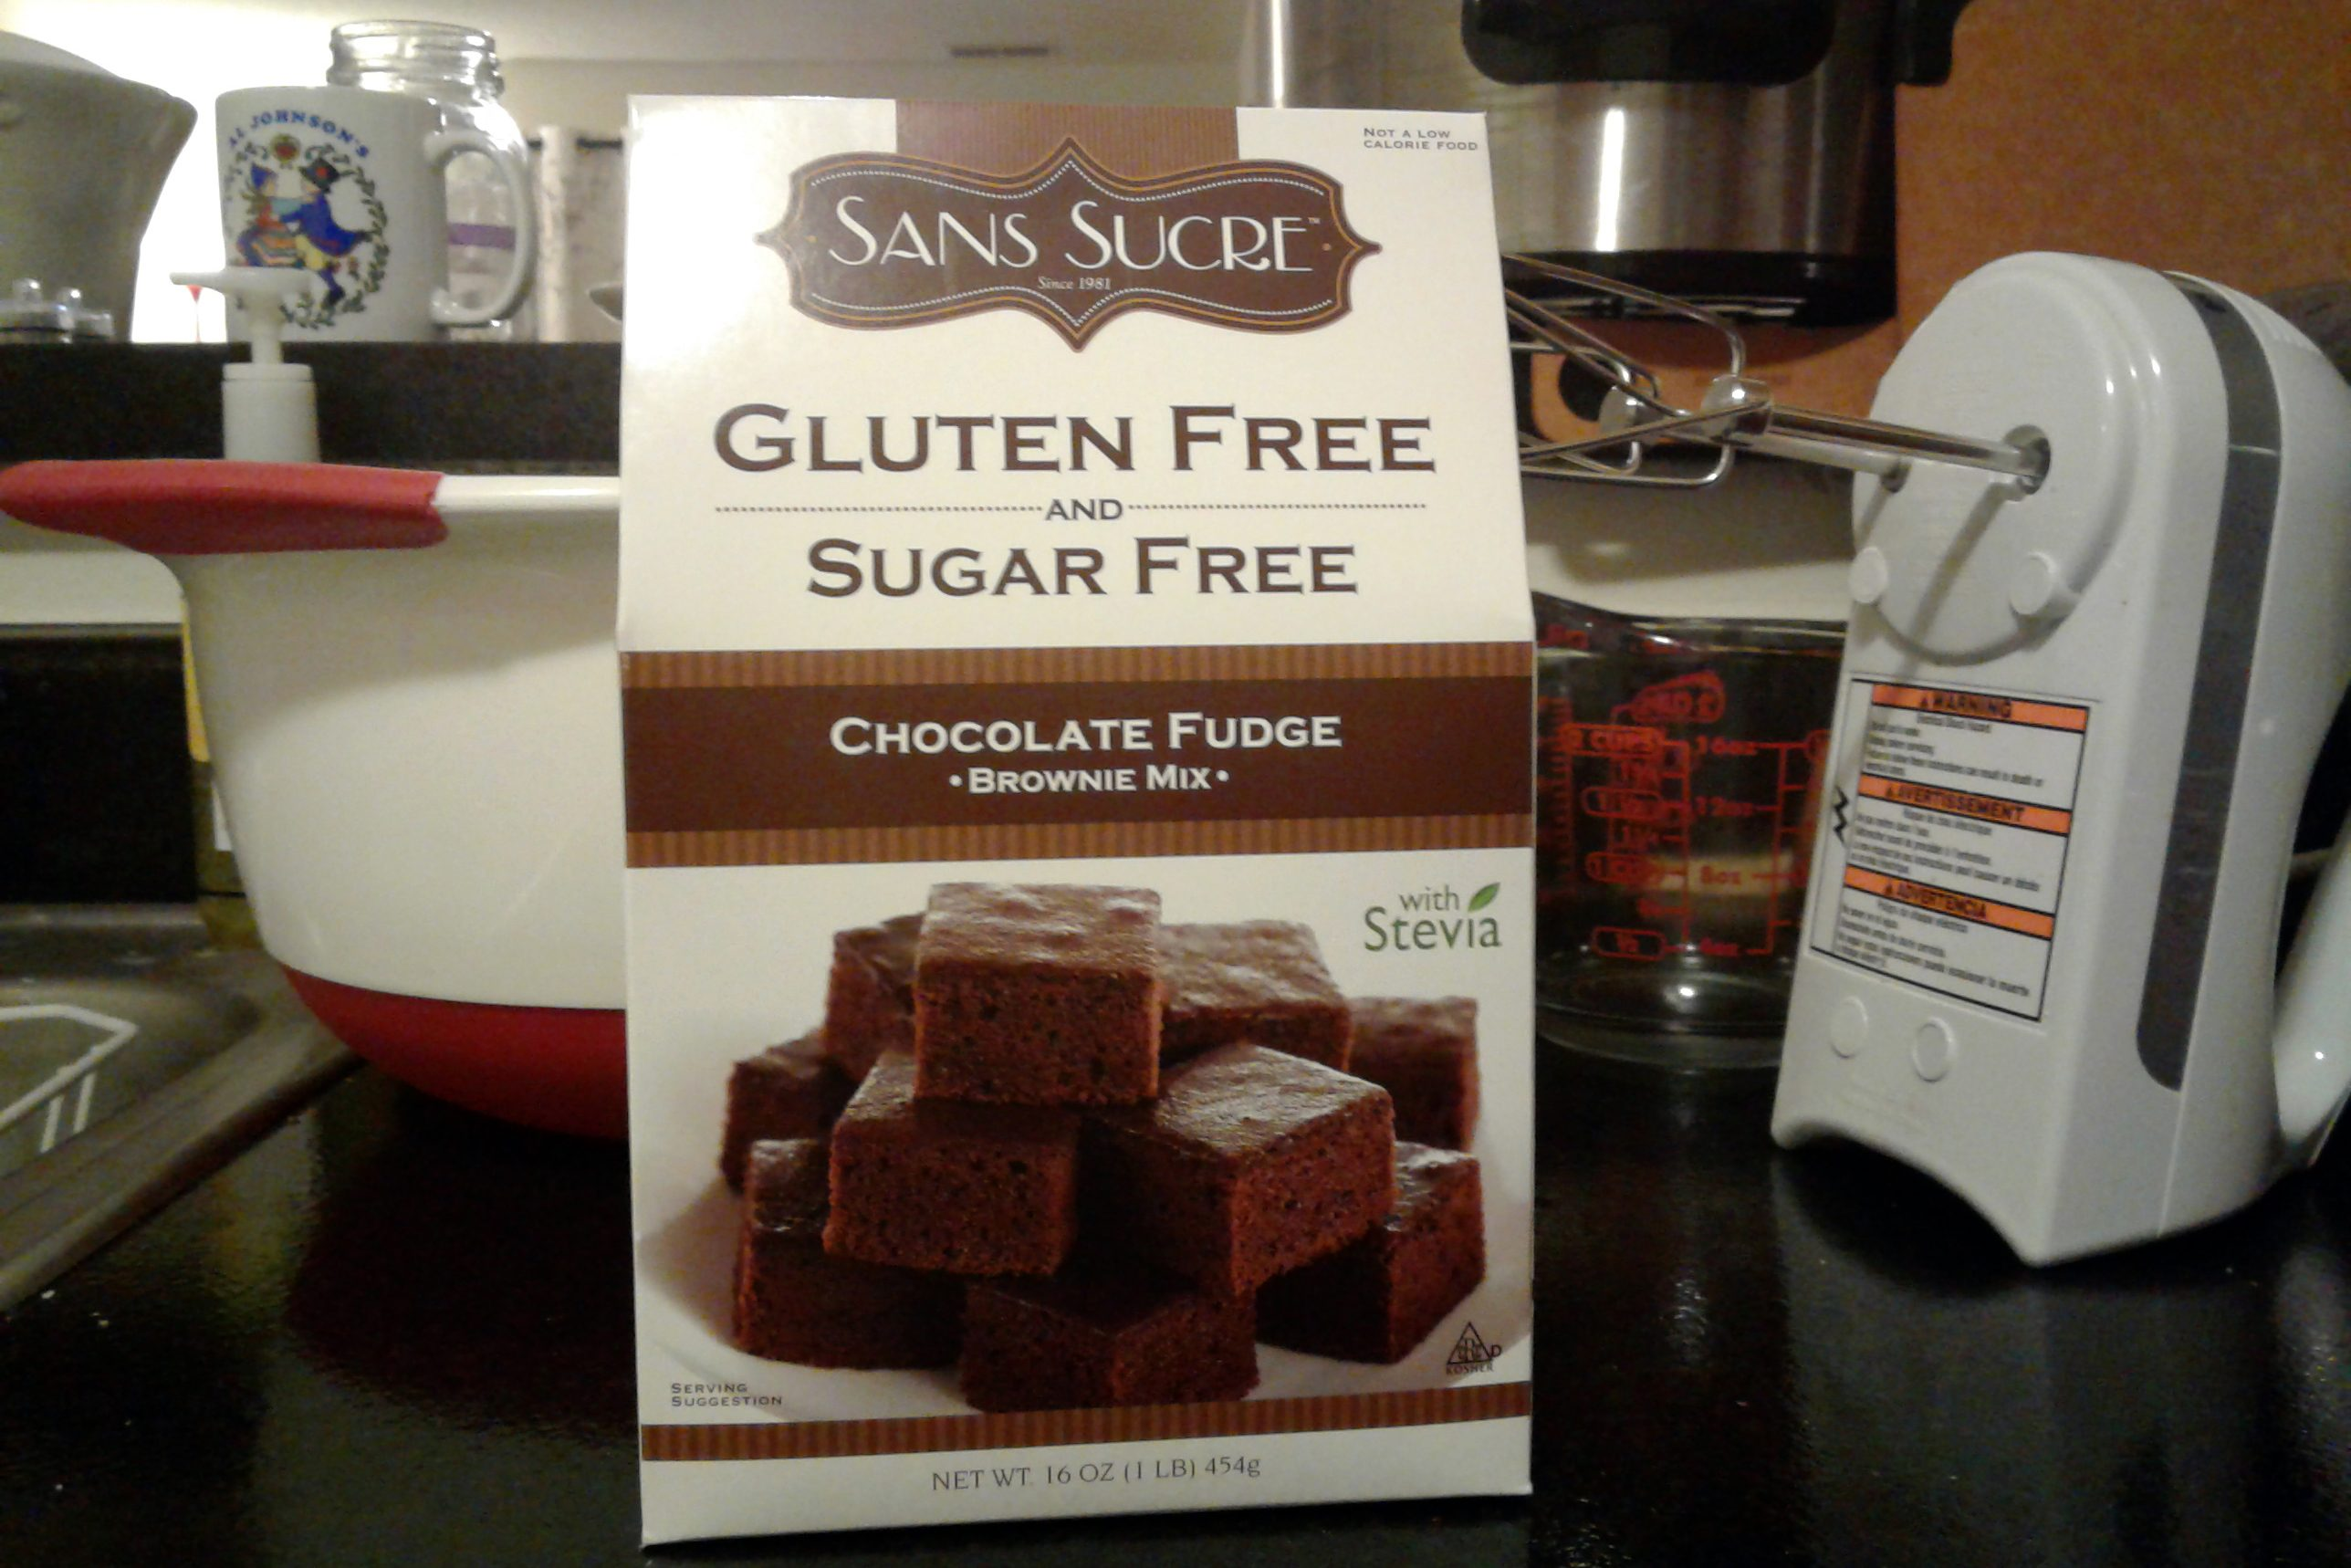 Sans Sucre brownies